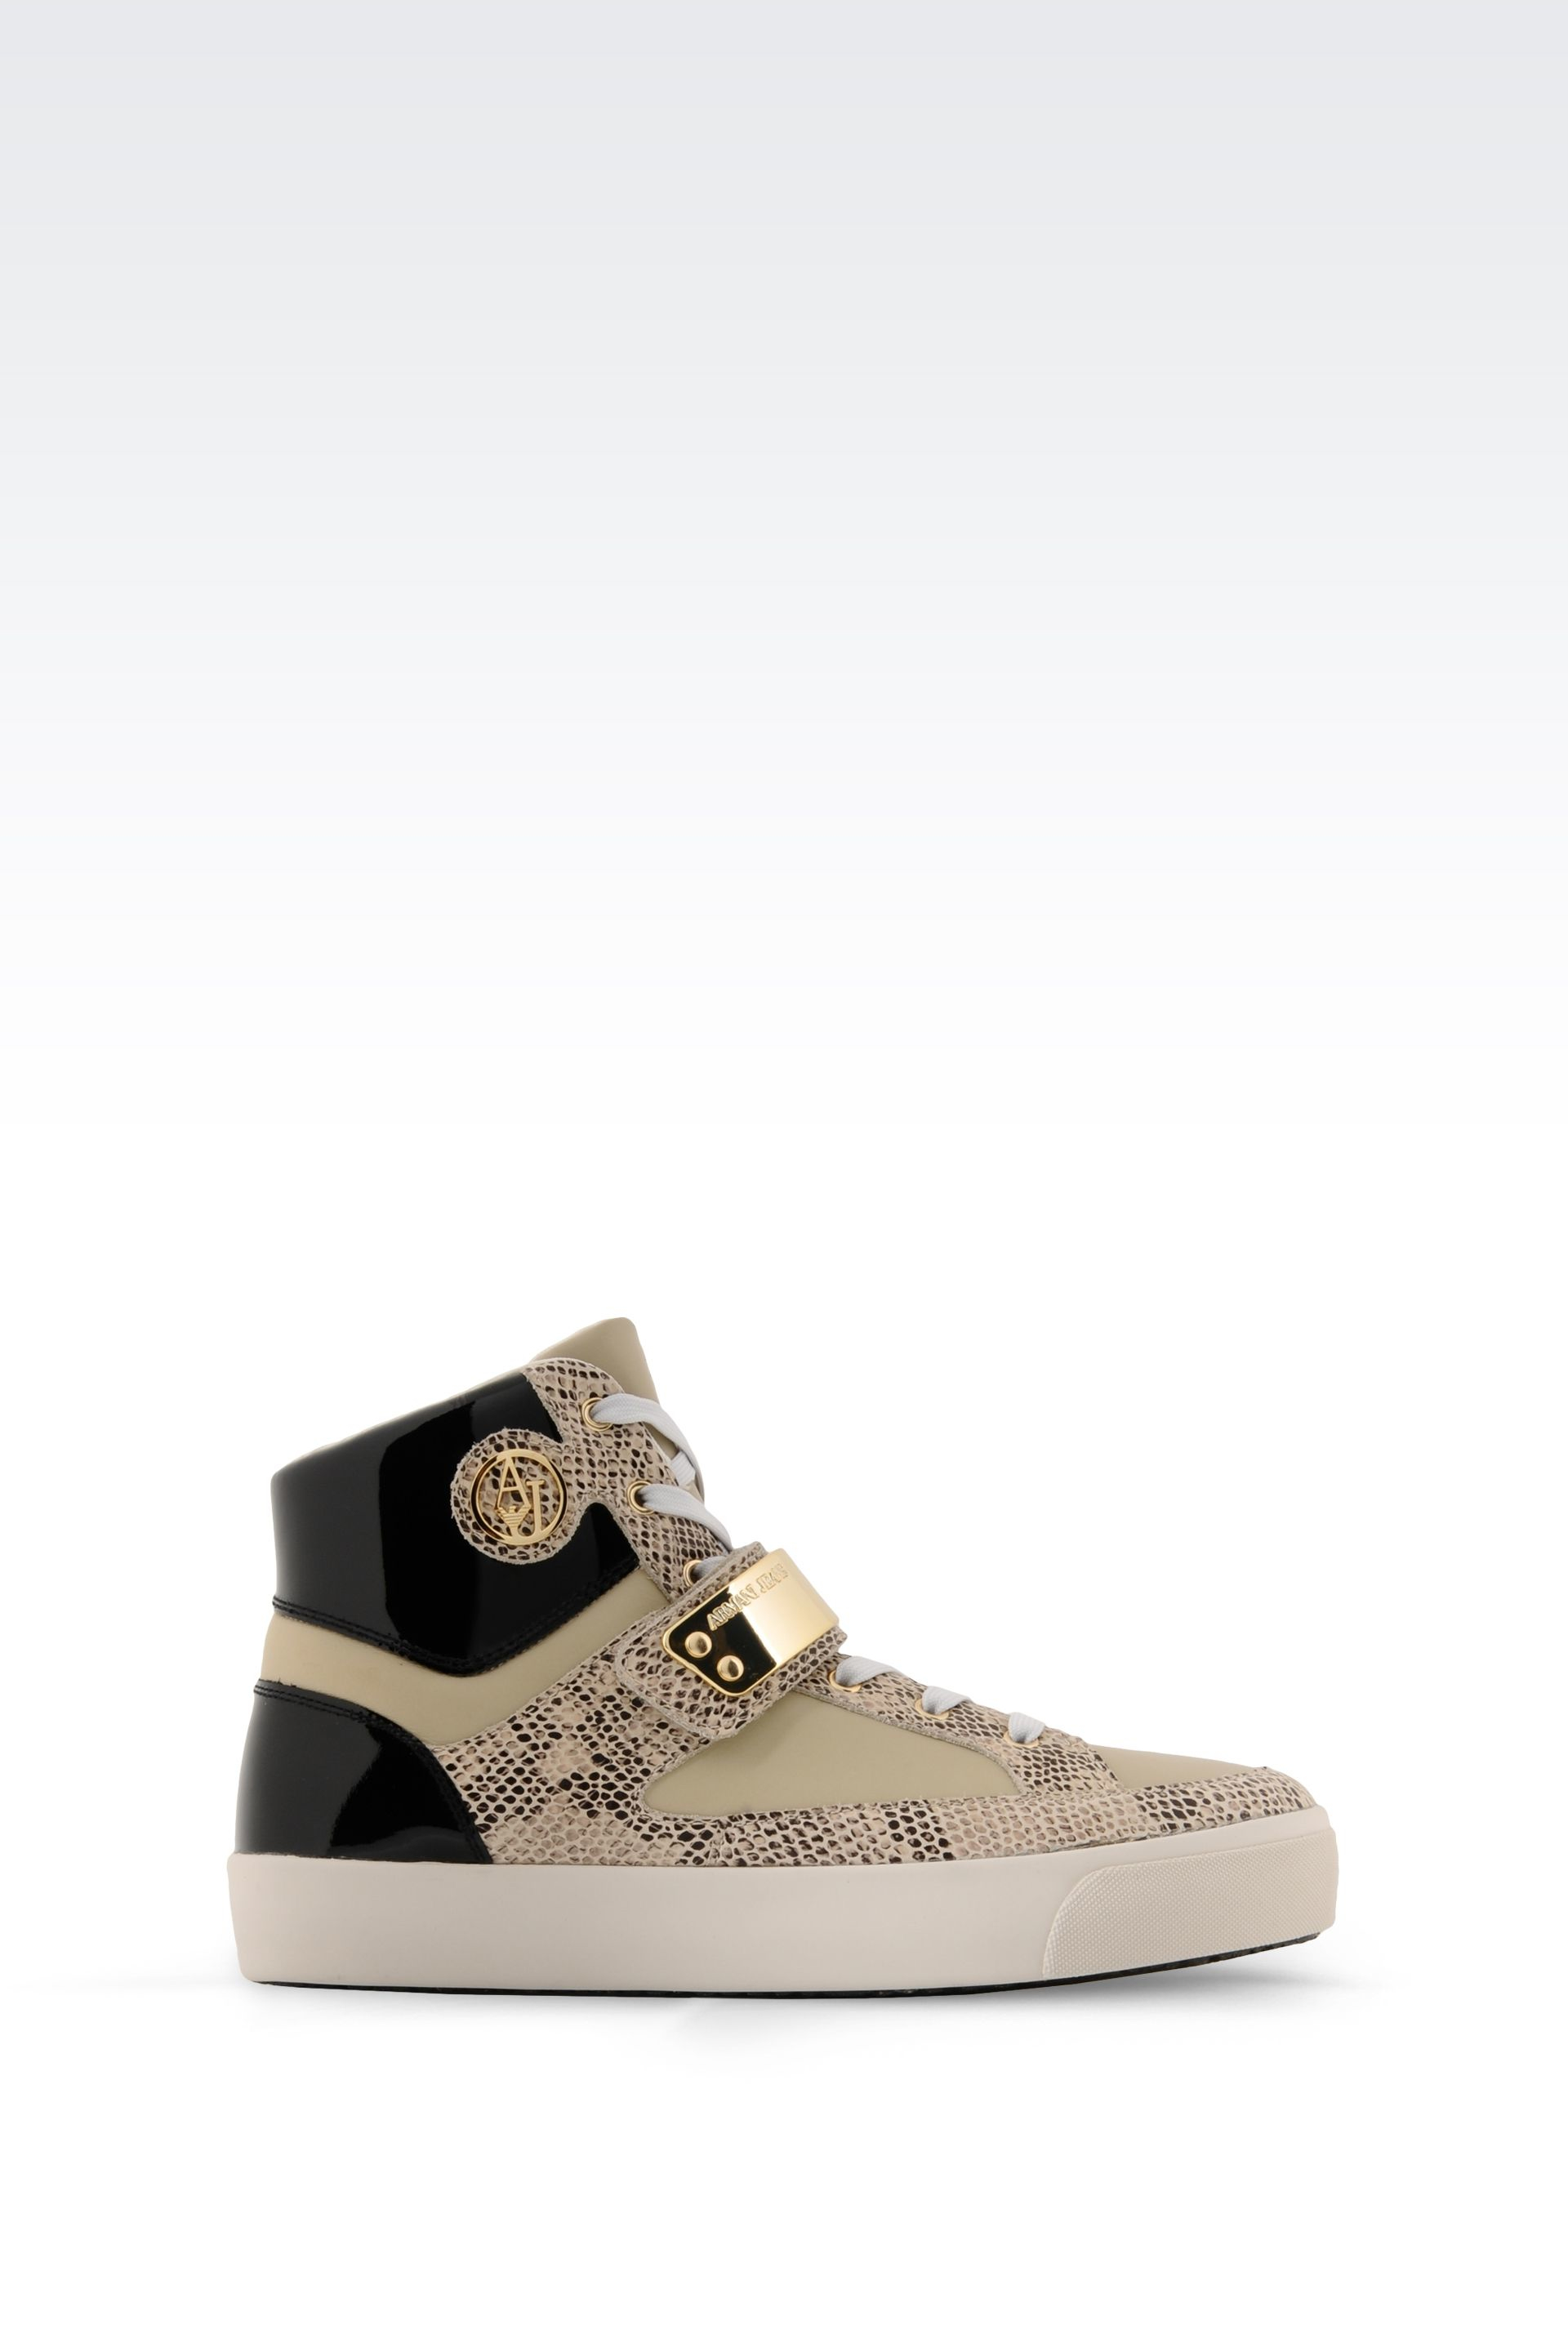 armani jeans high top sneaker in leather in gold beige lyst. Black Bedroom Furniture Sets. Home Design Ideas